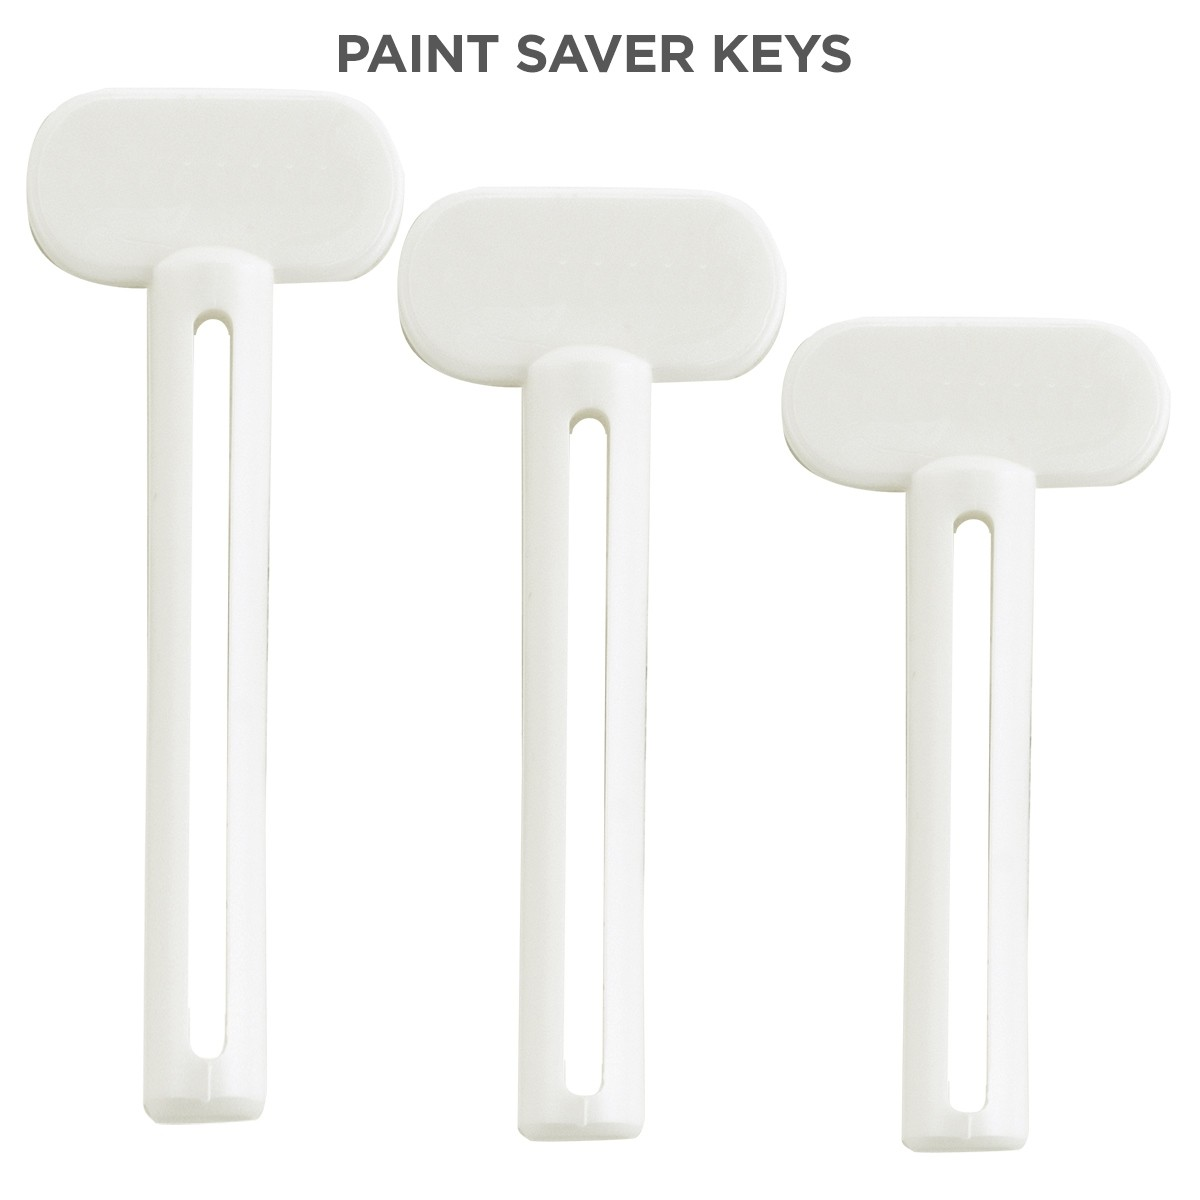 Paint Saver Keys - Paint Squeezer